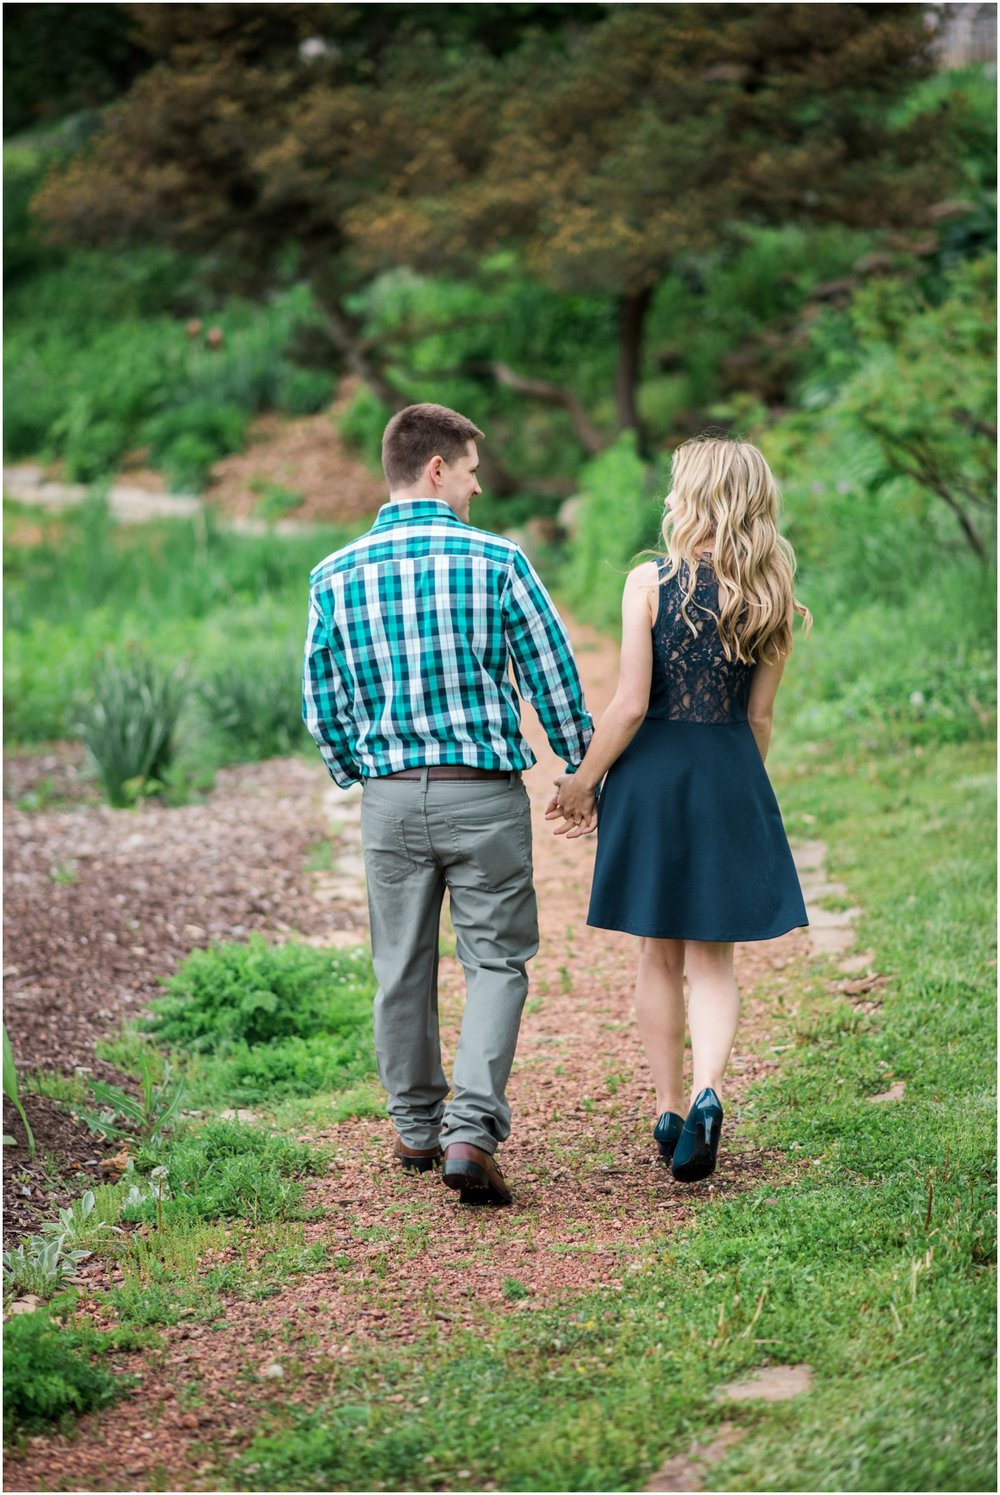 Paquette_Park_Portage_WI_Engagement_Photos_Heather_and_Derek_0025.jpg